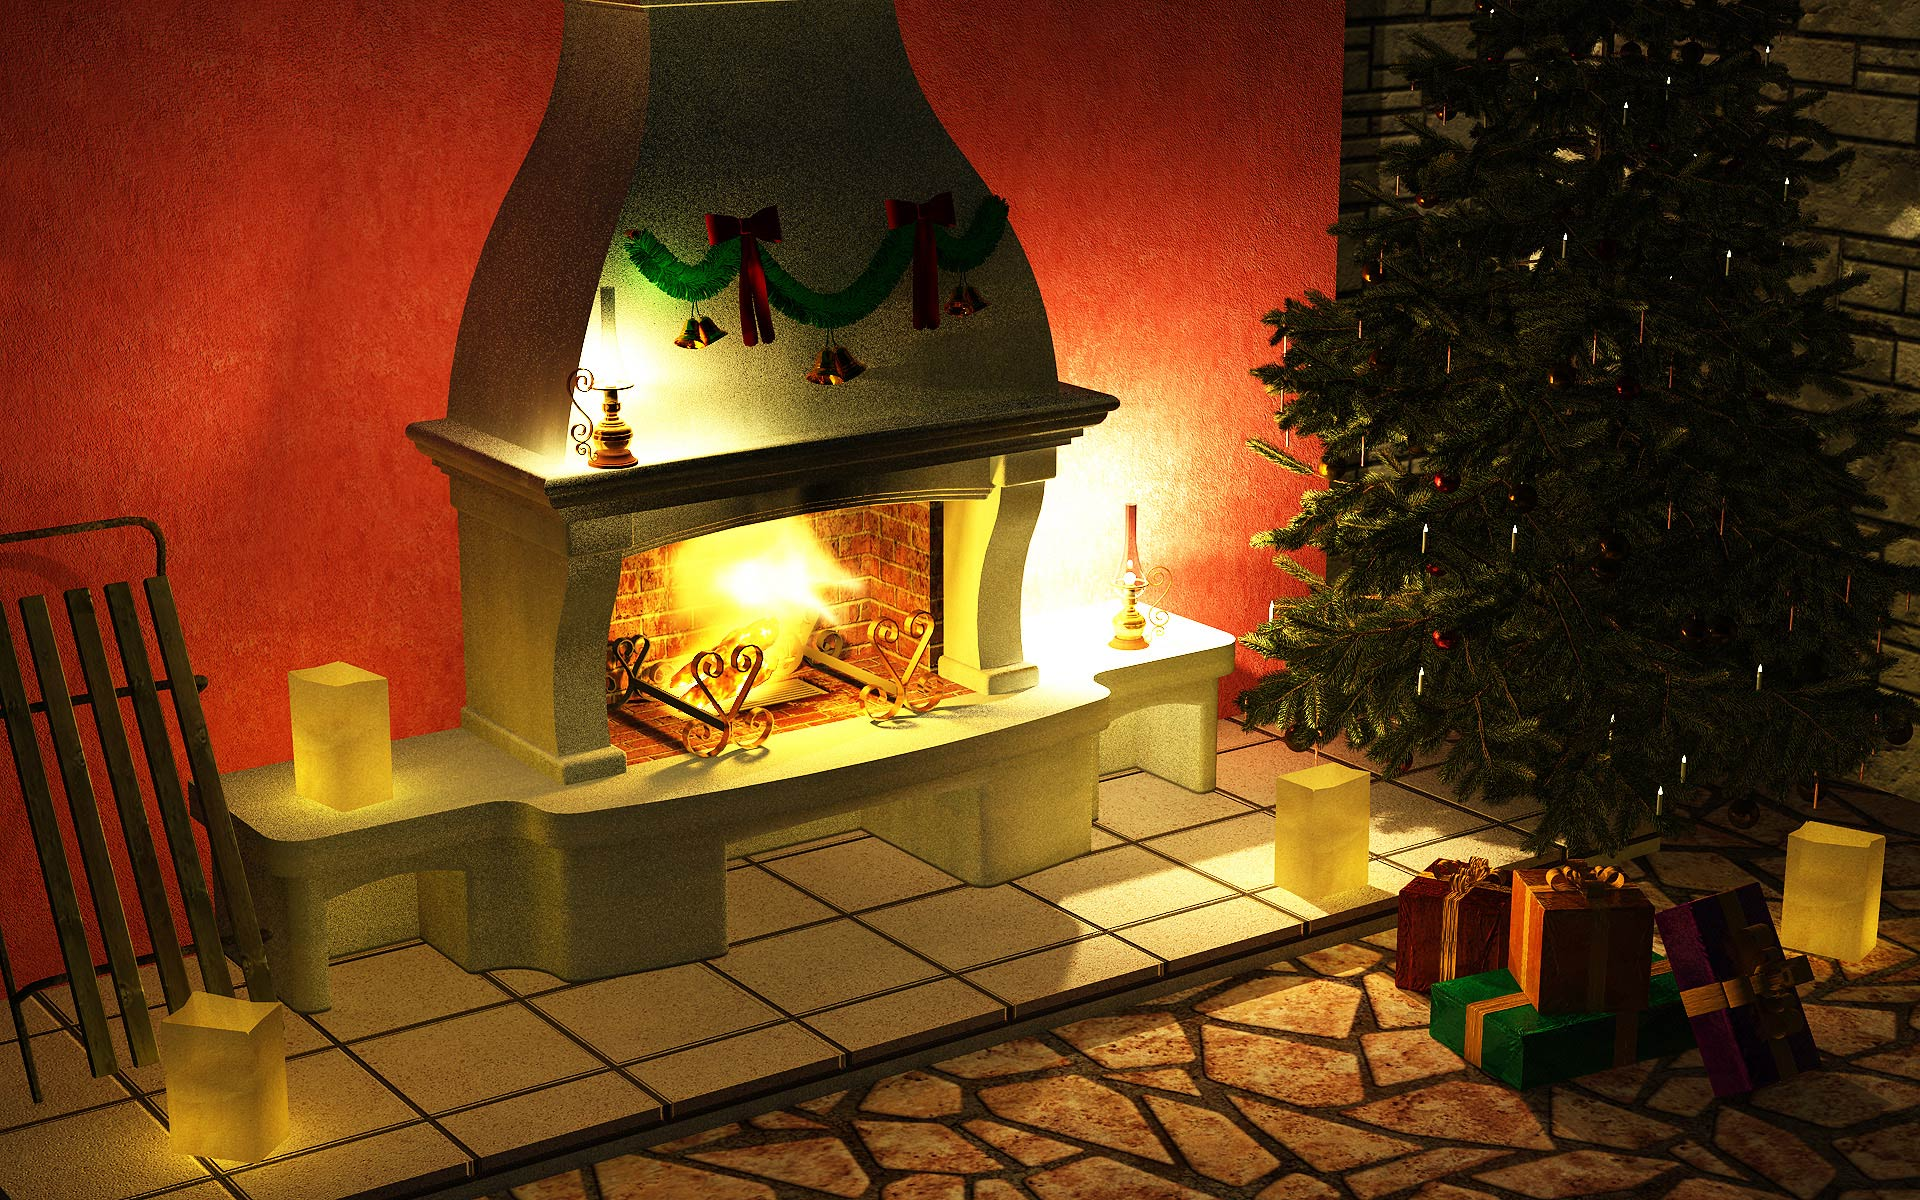 christmas fireplace fire holiday festive decorations rw wallpaper 1920x1200